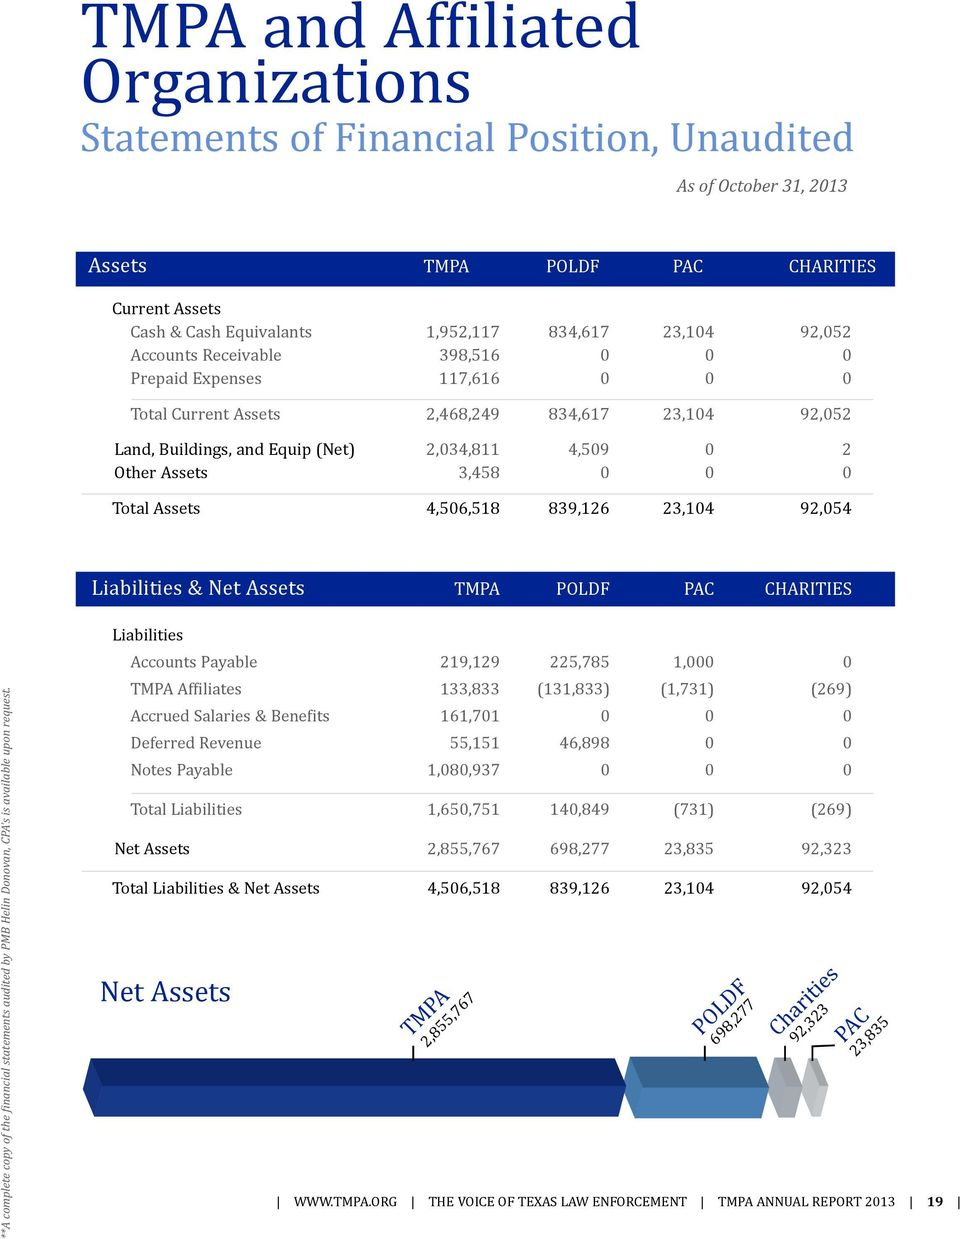 0 0 Total Assets 4,506,518 839,126 23,104 92,054 Liabilities & Net Assets TMPA POLDF PAC CHARITIES **A complete copy of the financial statements audited by PMB Helin Donovan, CPA s is available upon